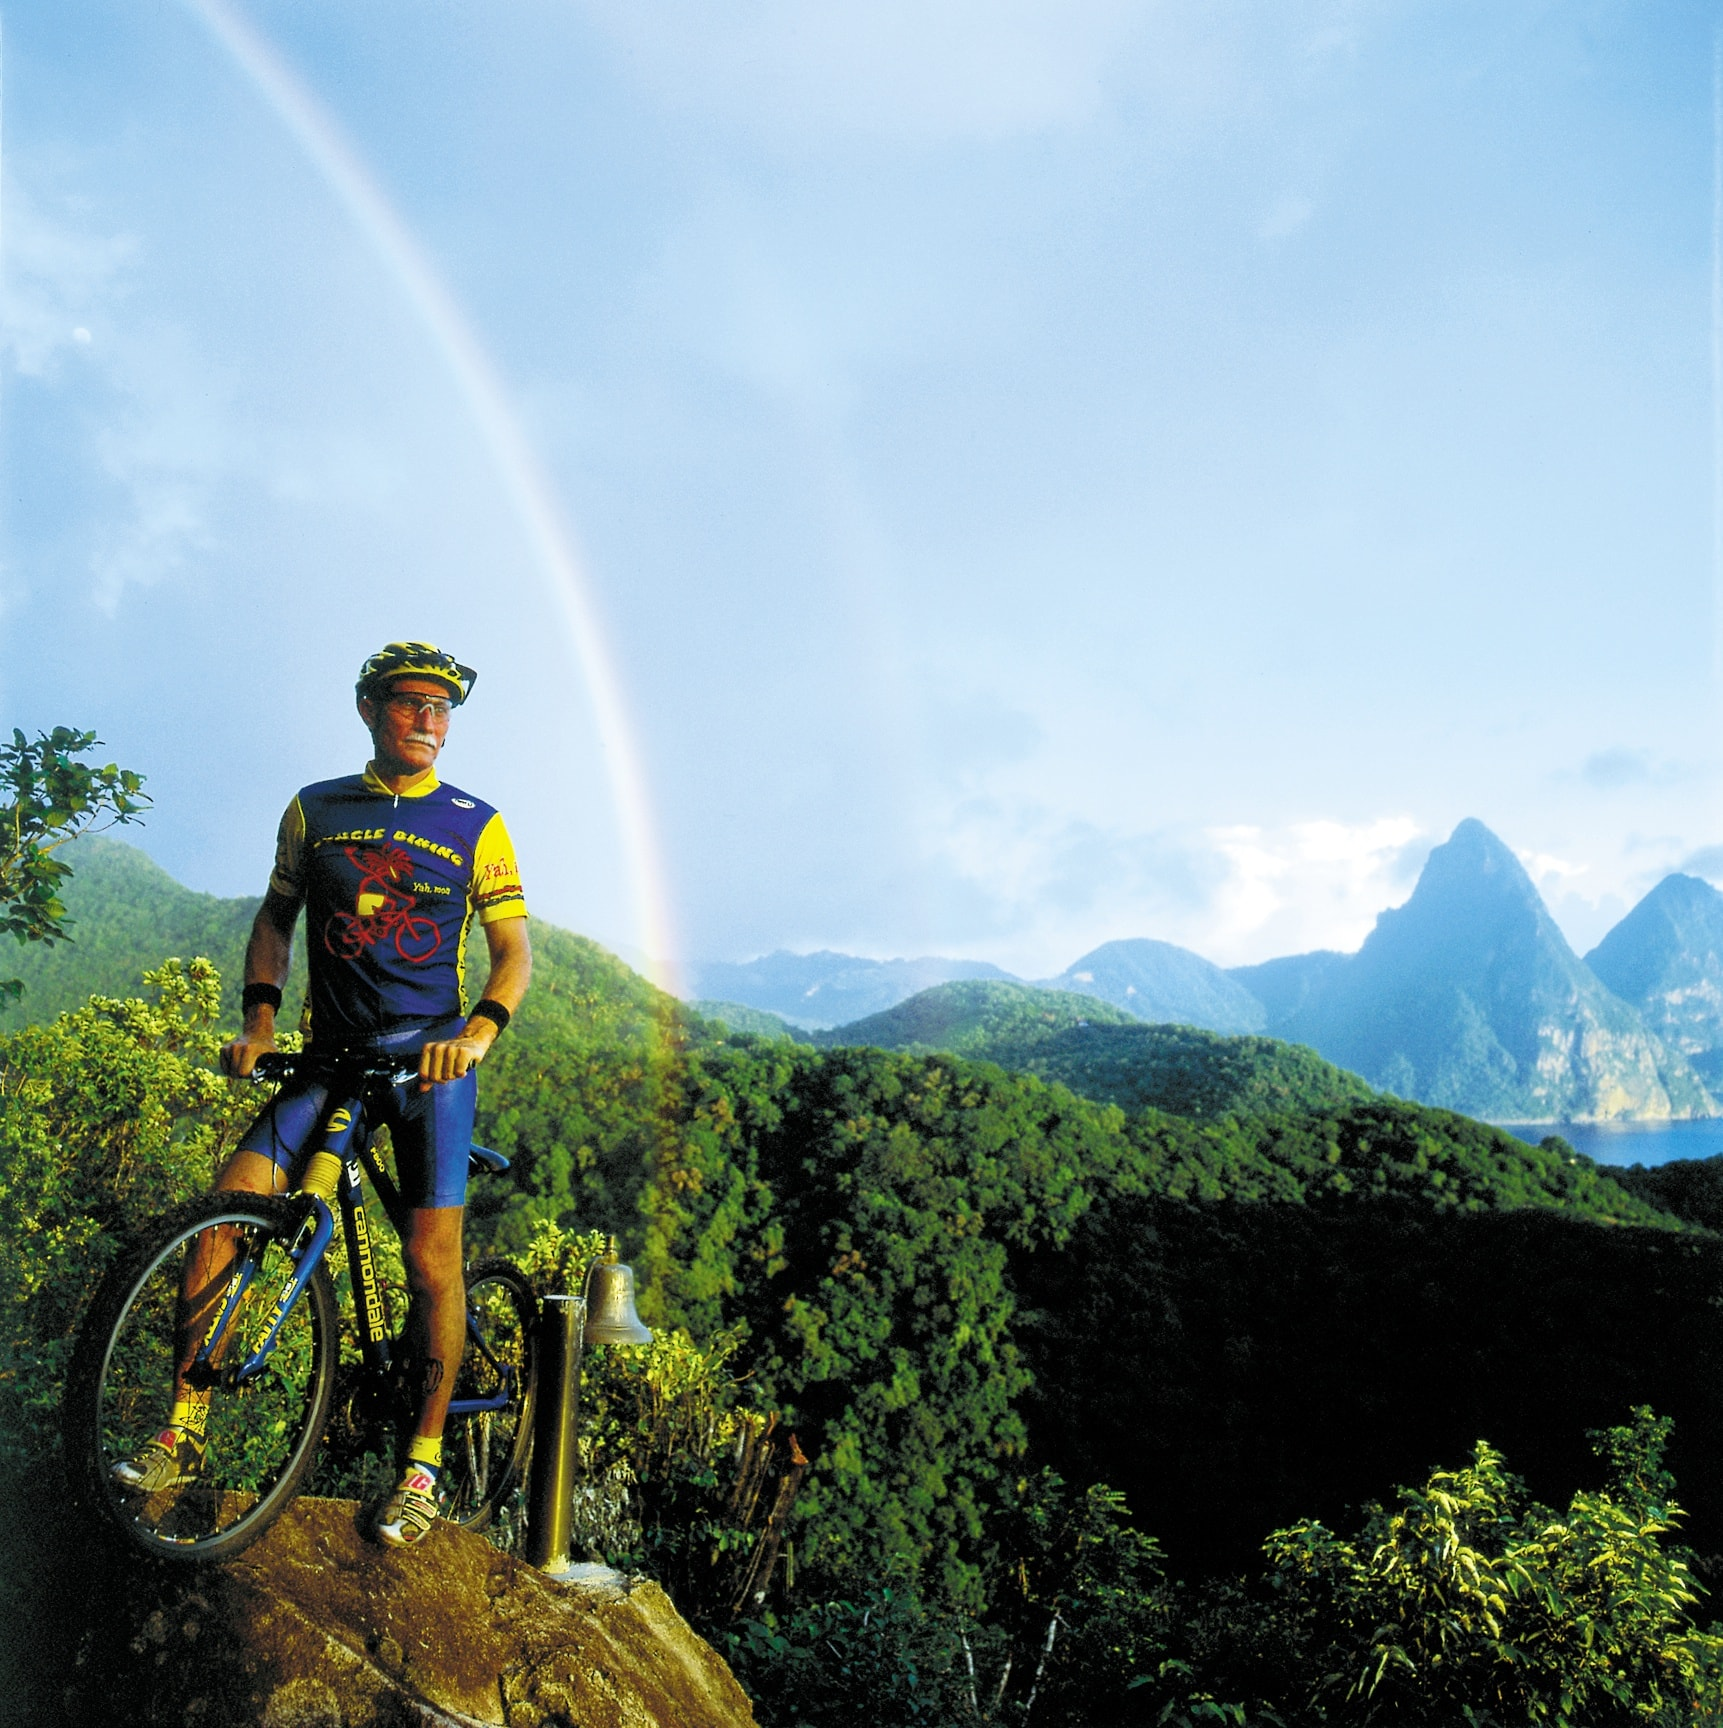 Hikers and riders can opt for challenging climbs that lead to some of St. Lucia's most scenic overlooks